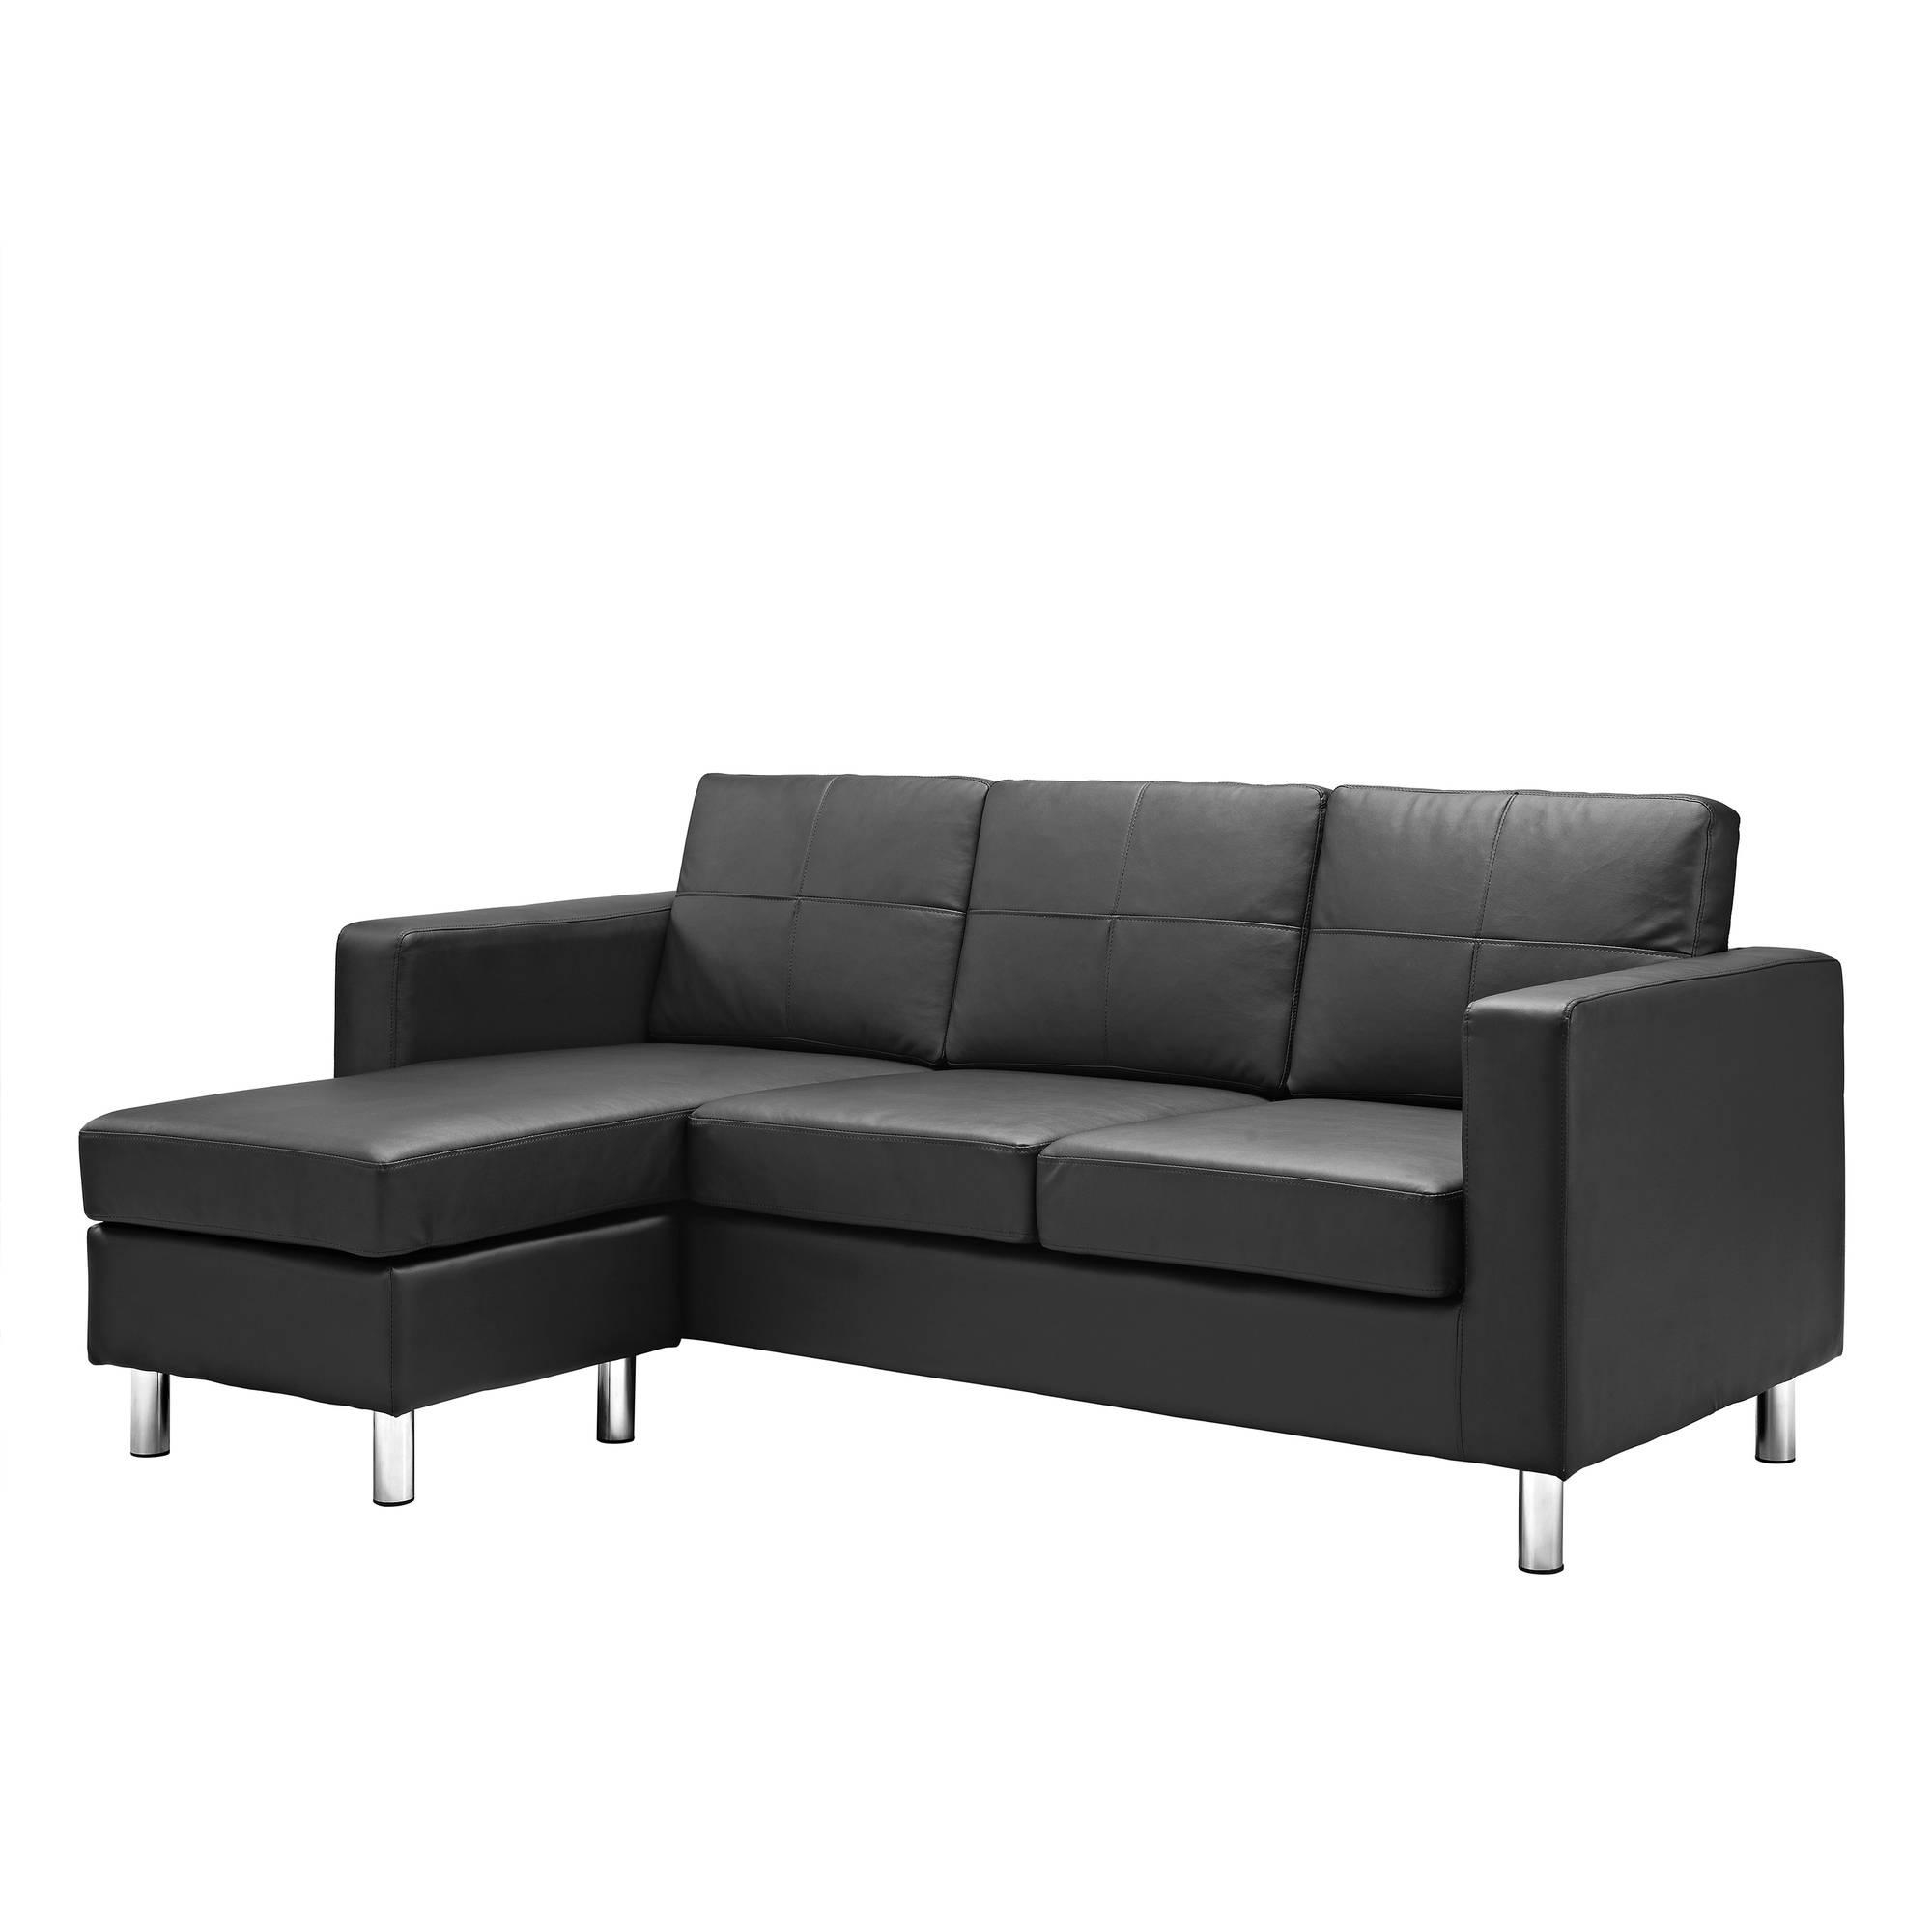 Dorel Living Small Spaces Configurable Sectional Sofa, Multiple Within Small Sectional Sofas For Small Spaces (Image 12 of 20)